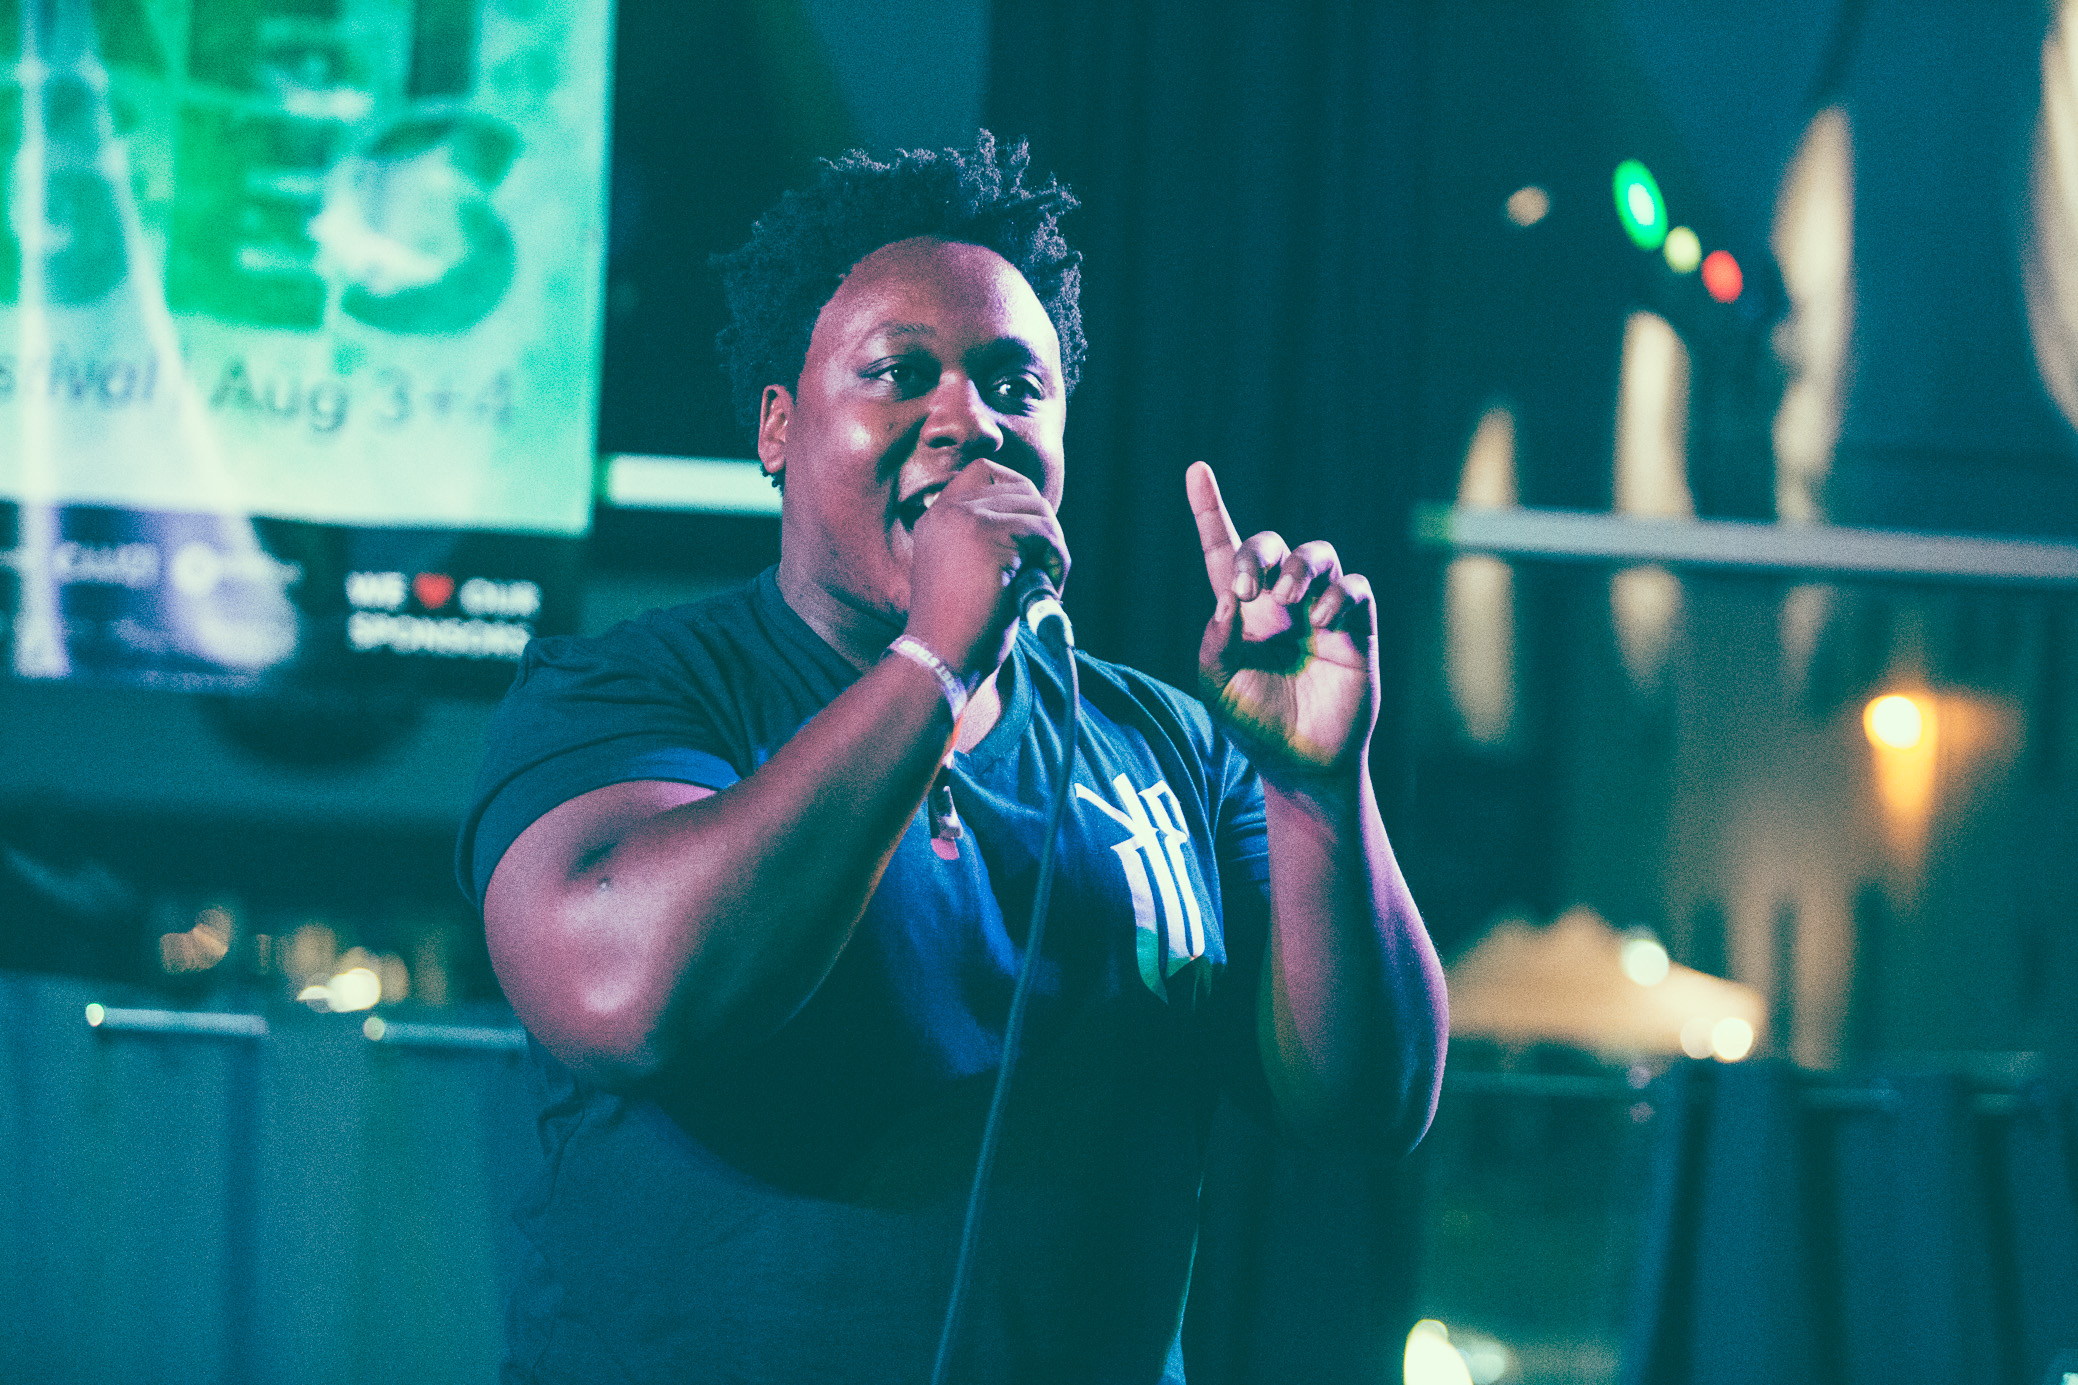 Kadesh Flow performs in concert at the Secret Stages Music Discovery Festival in Birmingham, Alabama on August 3rd, 2018. (Photo by David A. Smith/DSmithScenes)